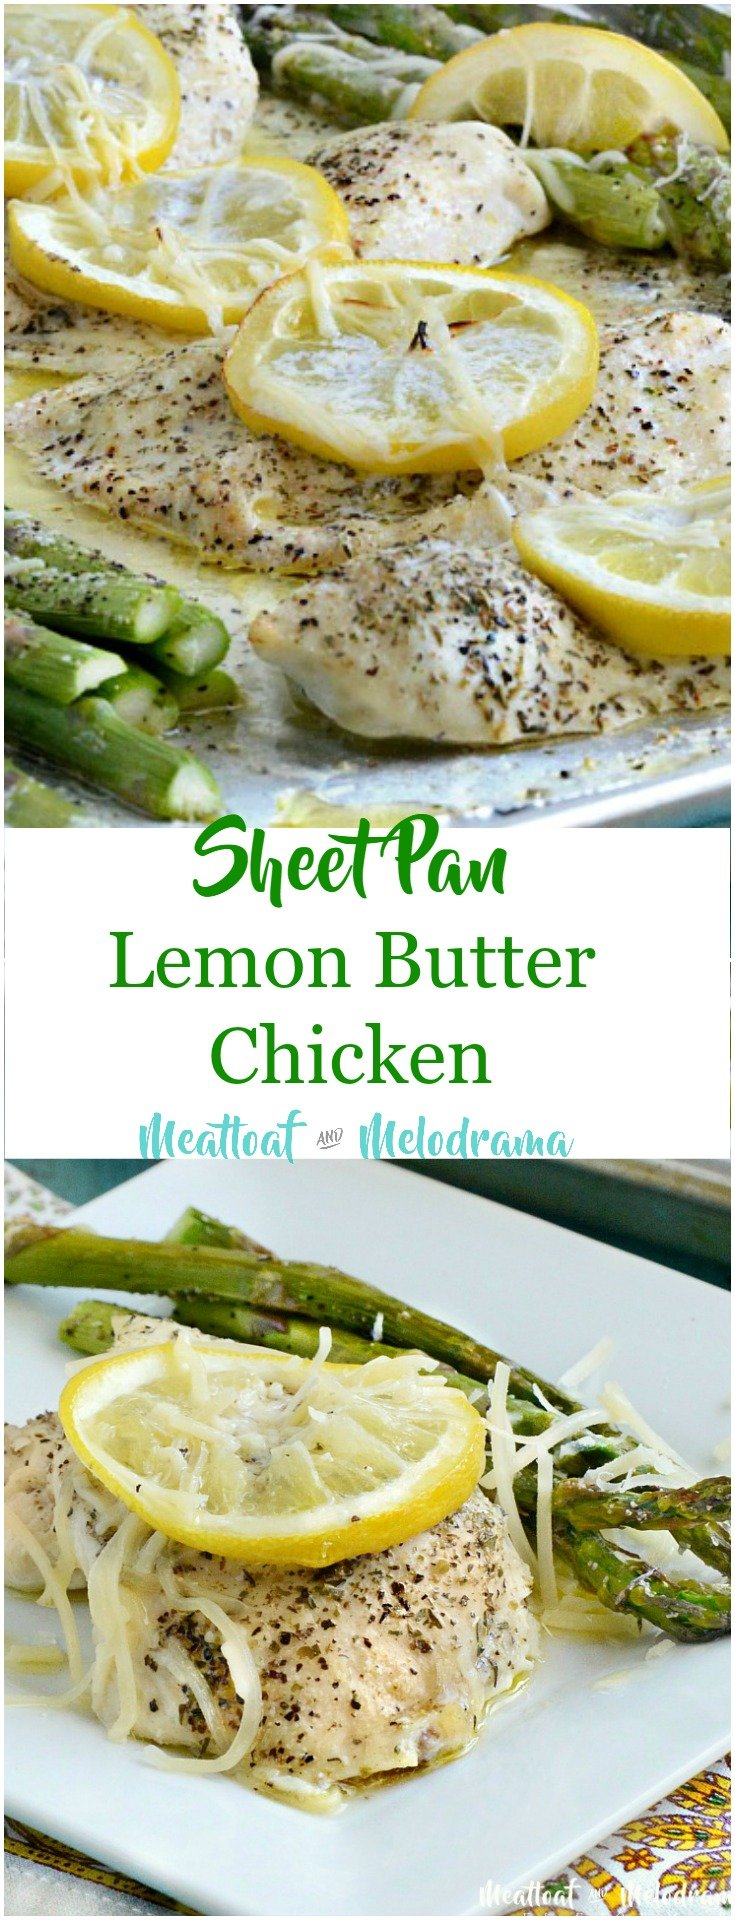 My Family Couldn't Get Enough Of This Sheet Pan Lemon Butter Chicken And  Asparagus